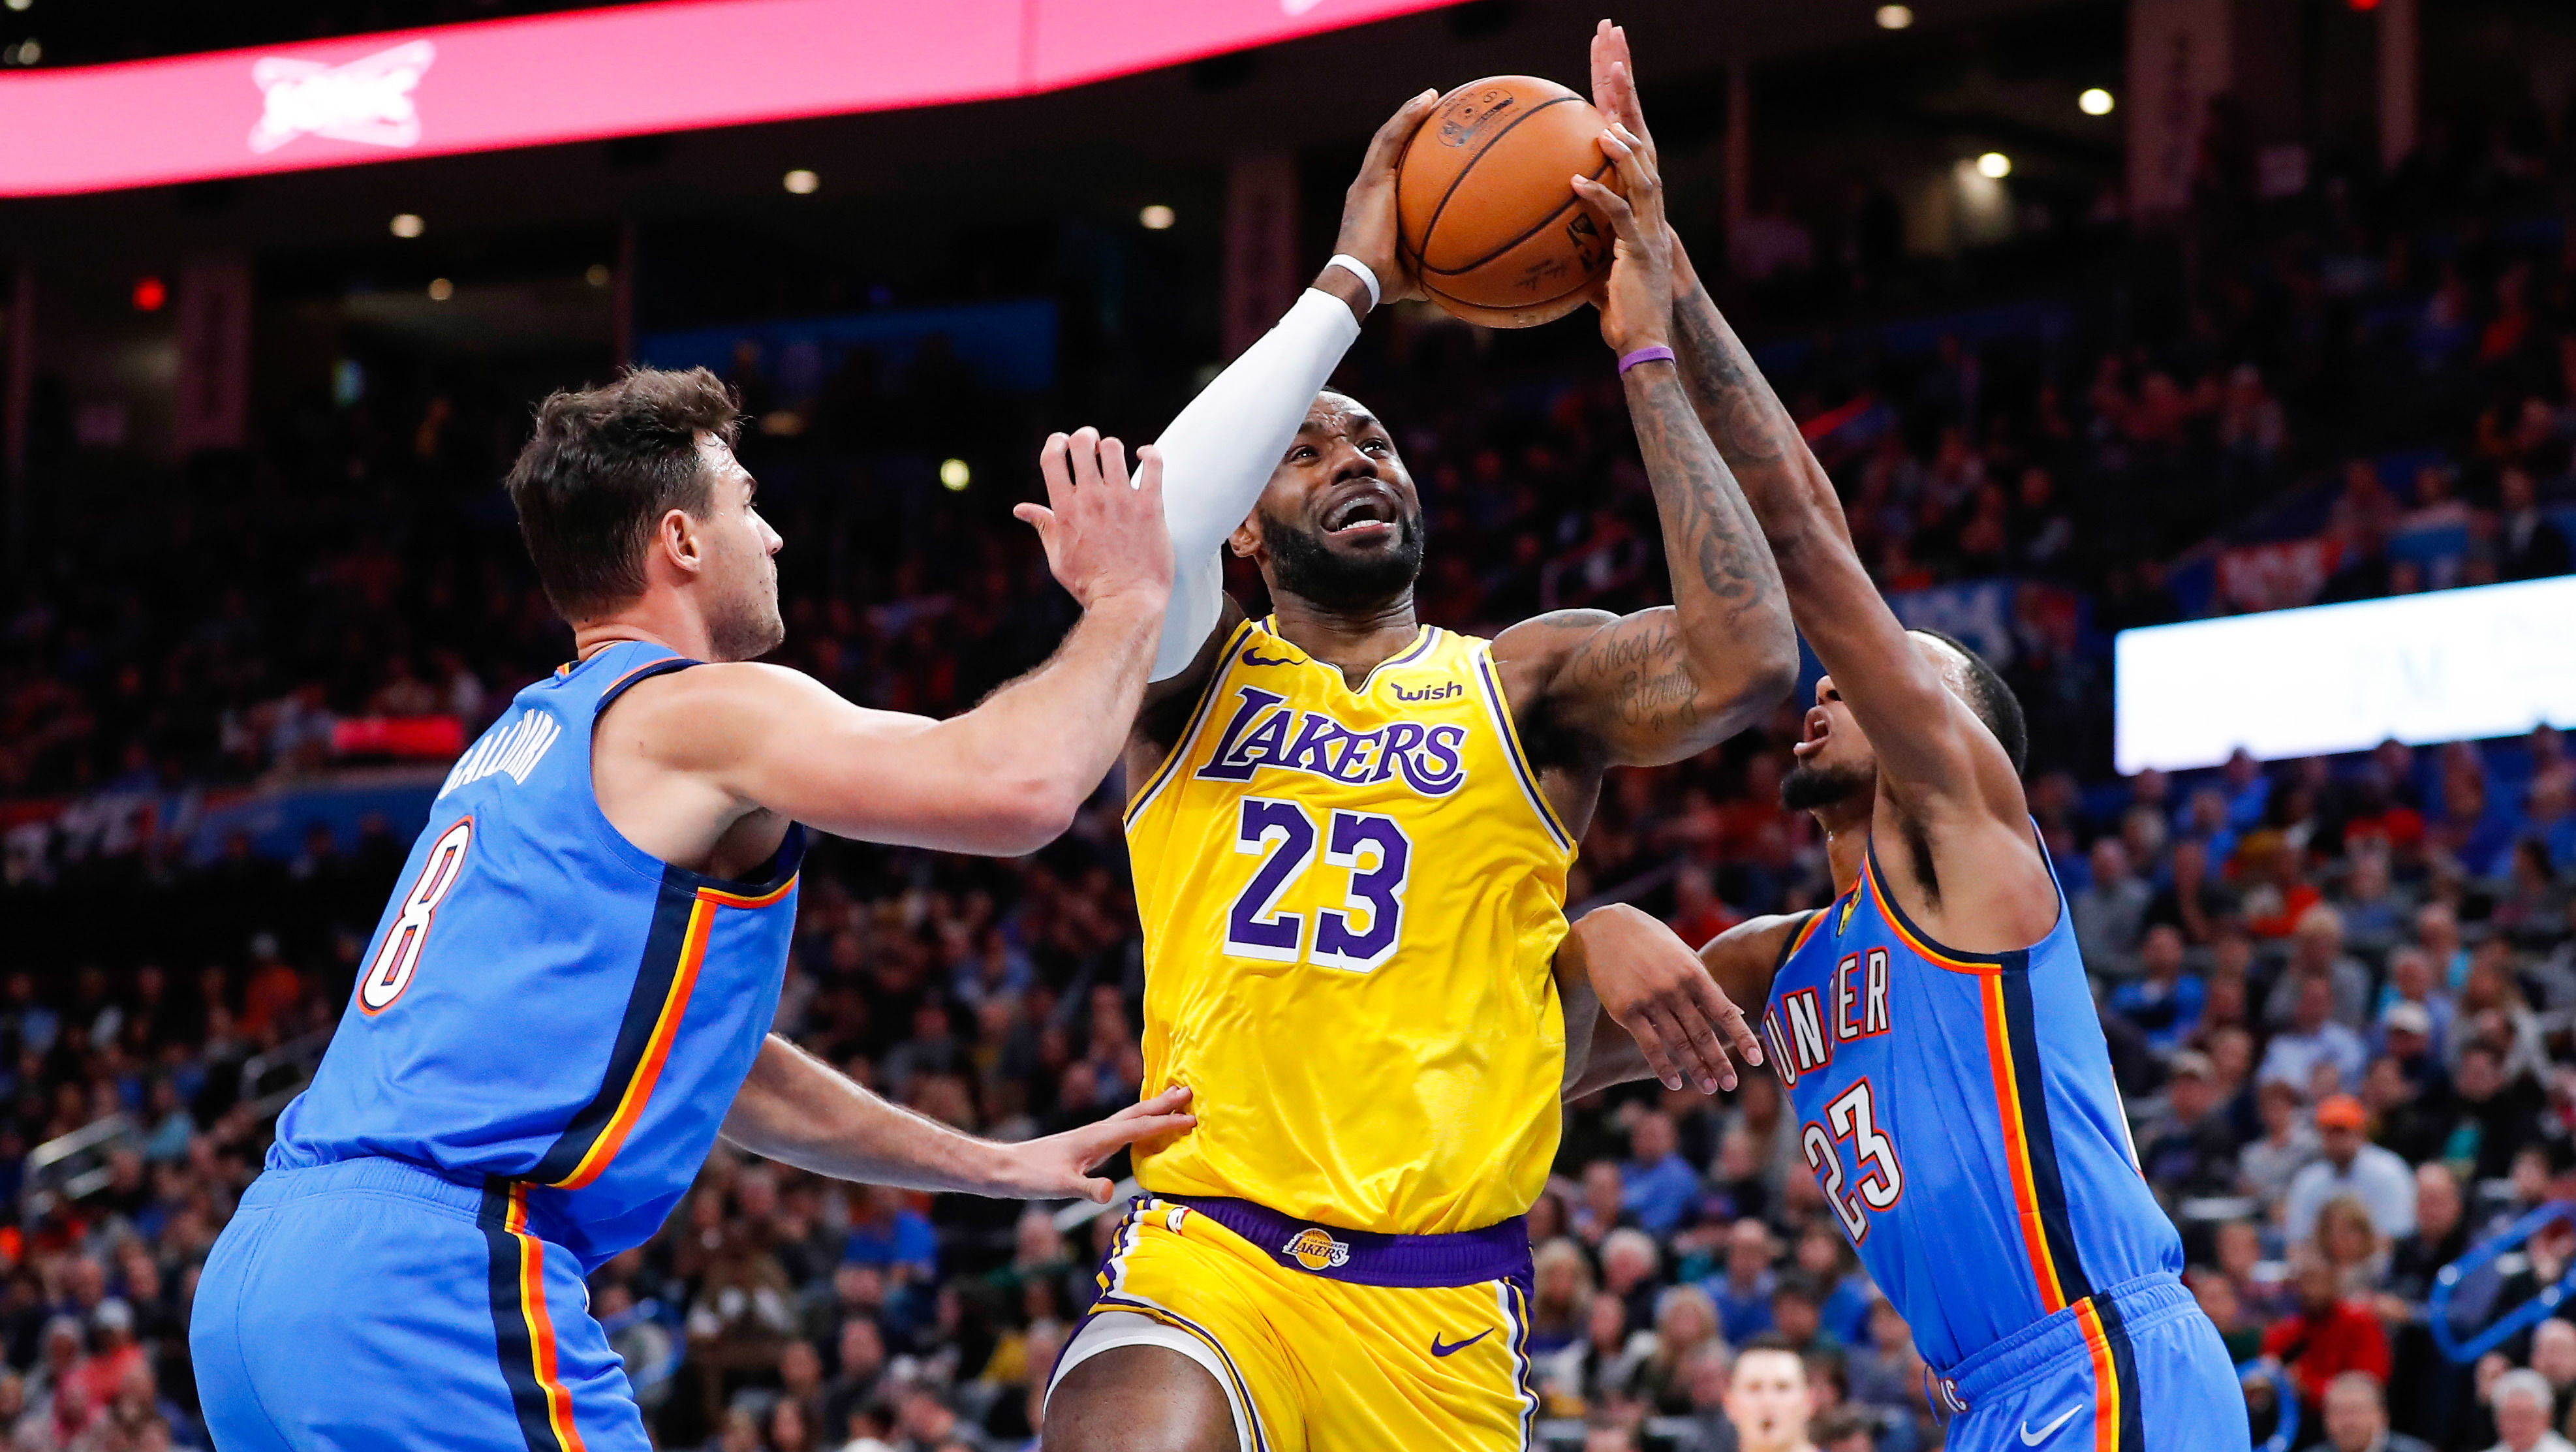 Calendrier Playoff Nba 2021 NBA: play offs, calendrier, mini tournoi des changements